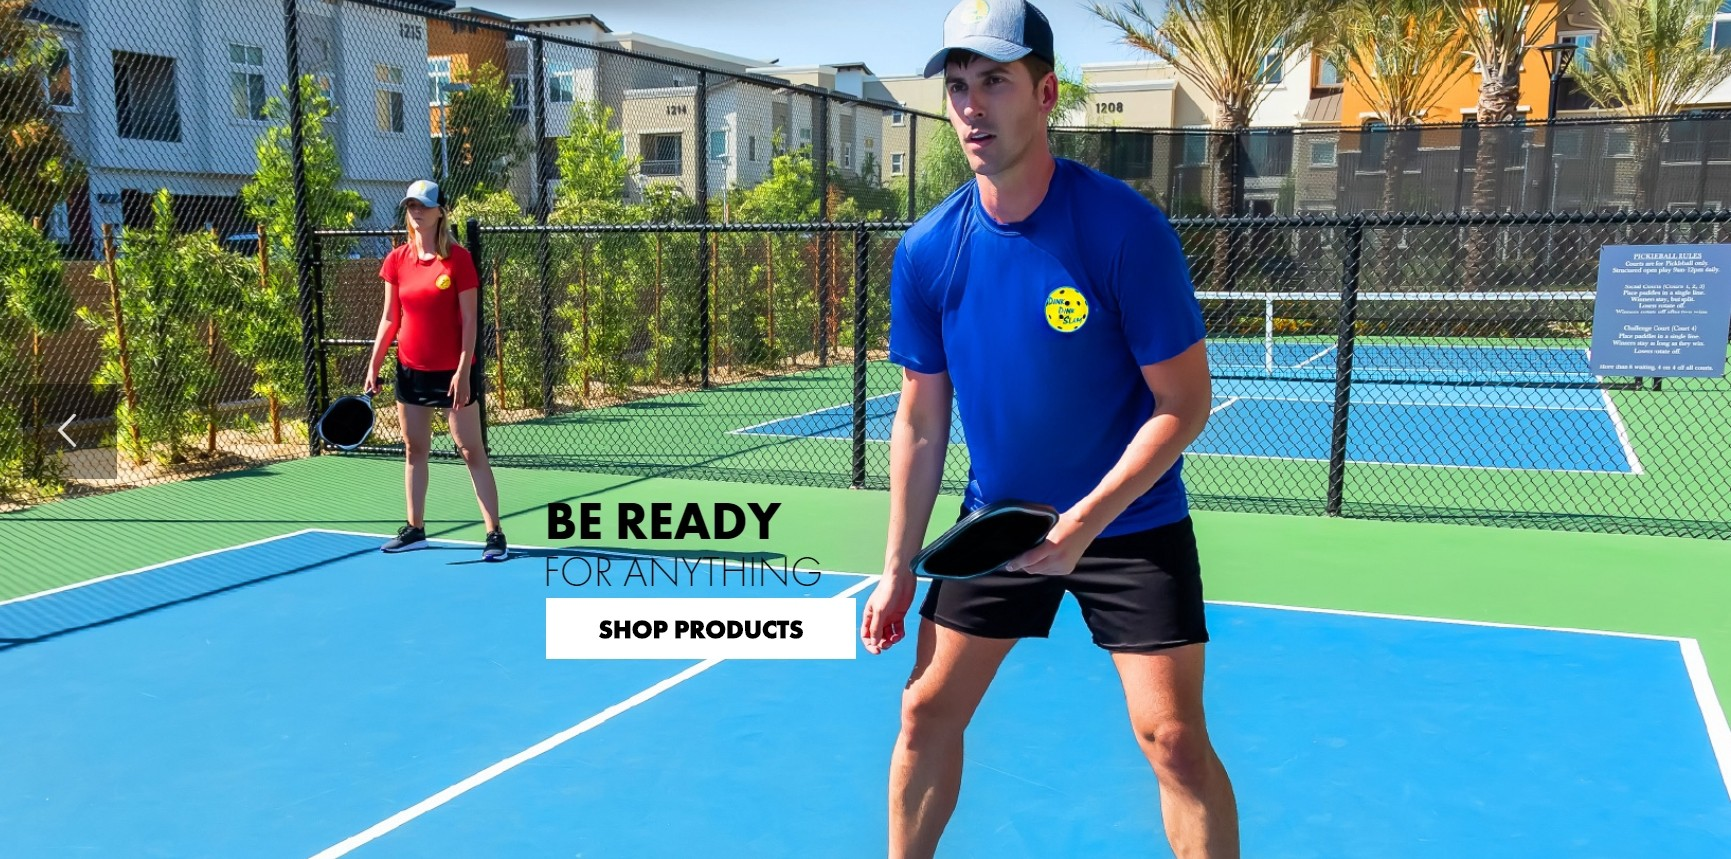 539bb64a566 Best Pickleball T-shirt   Apparel Supplier – dds LLC – Medium